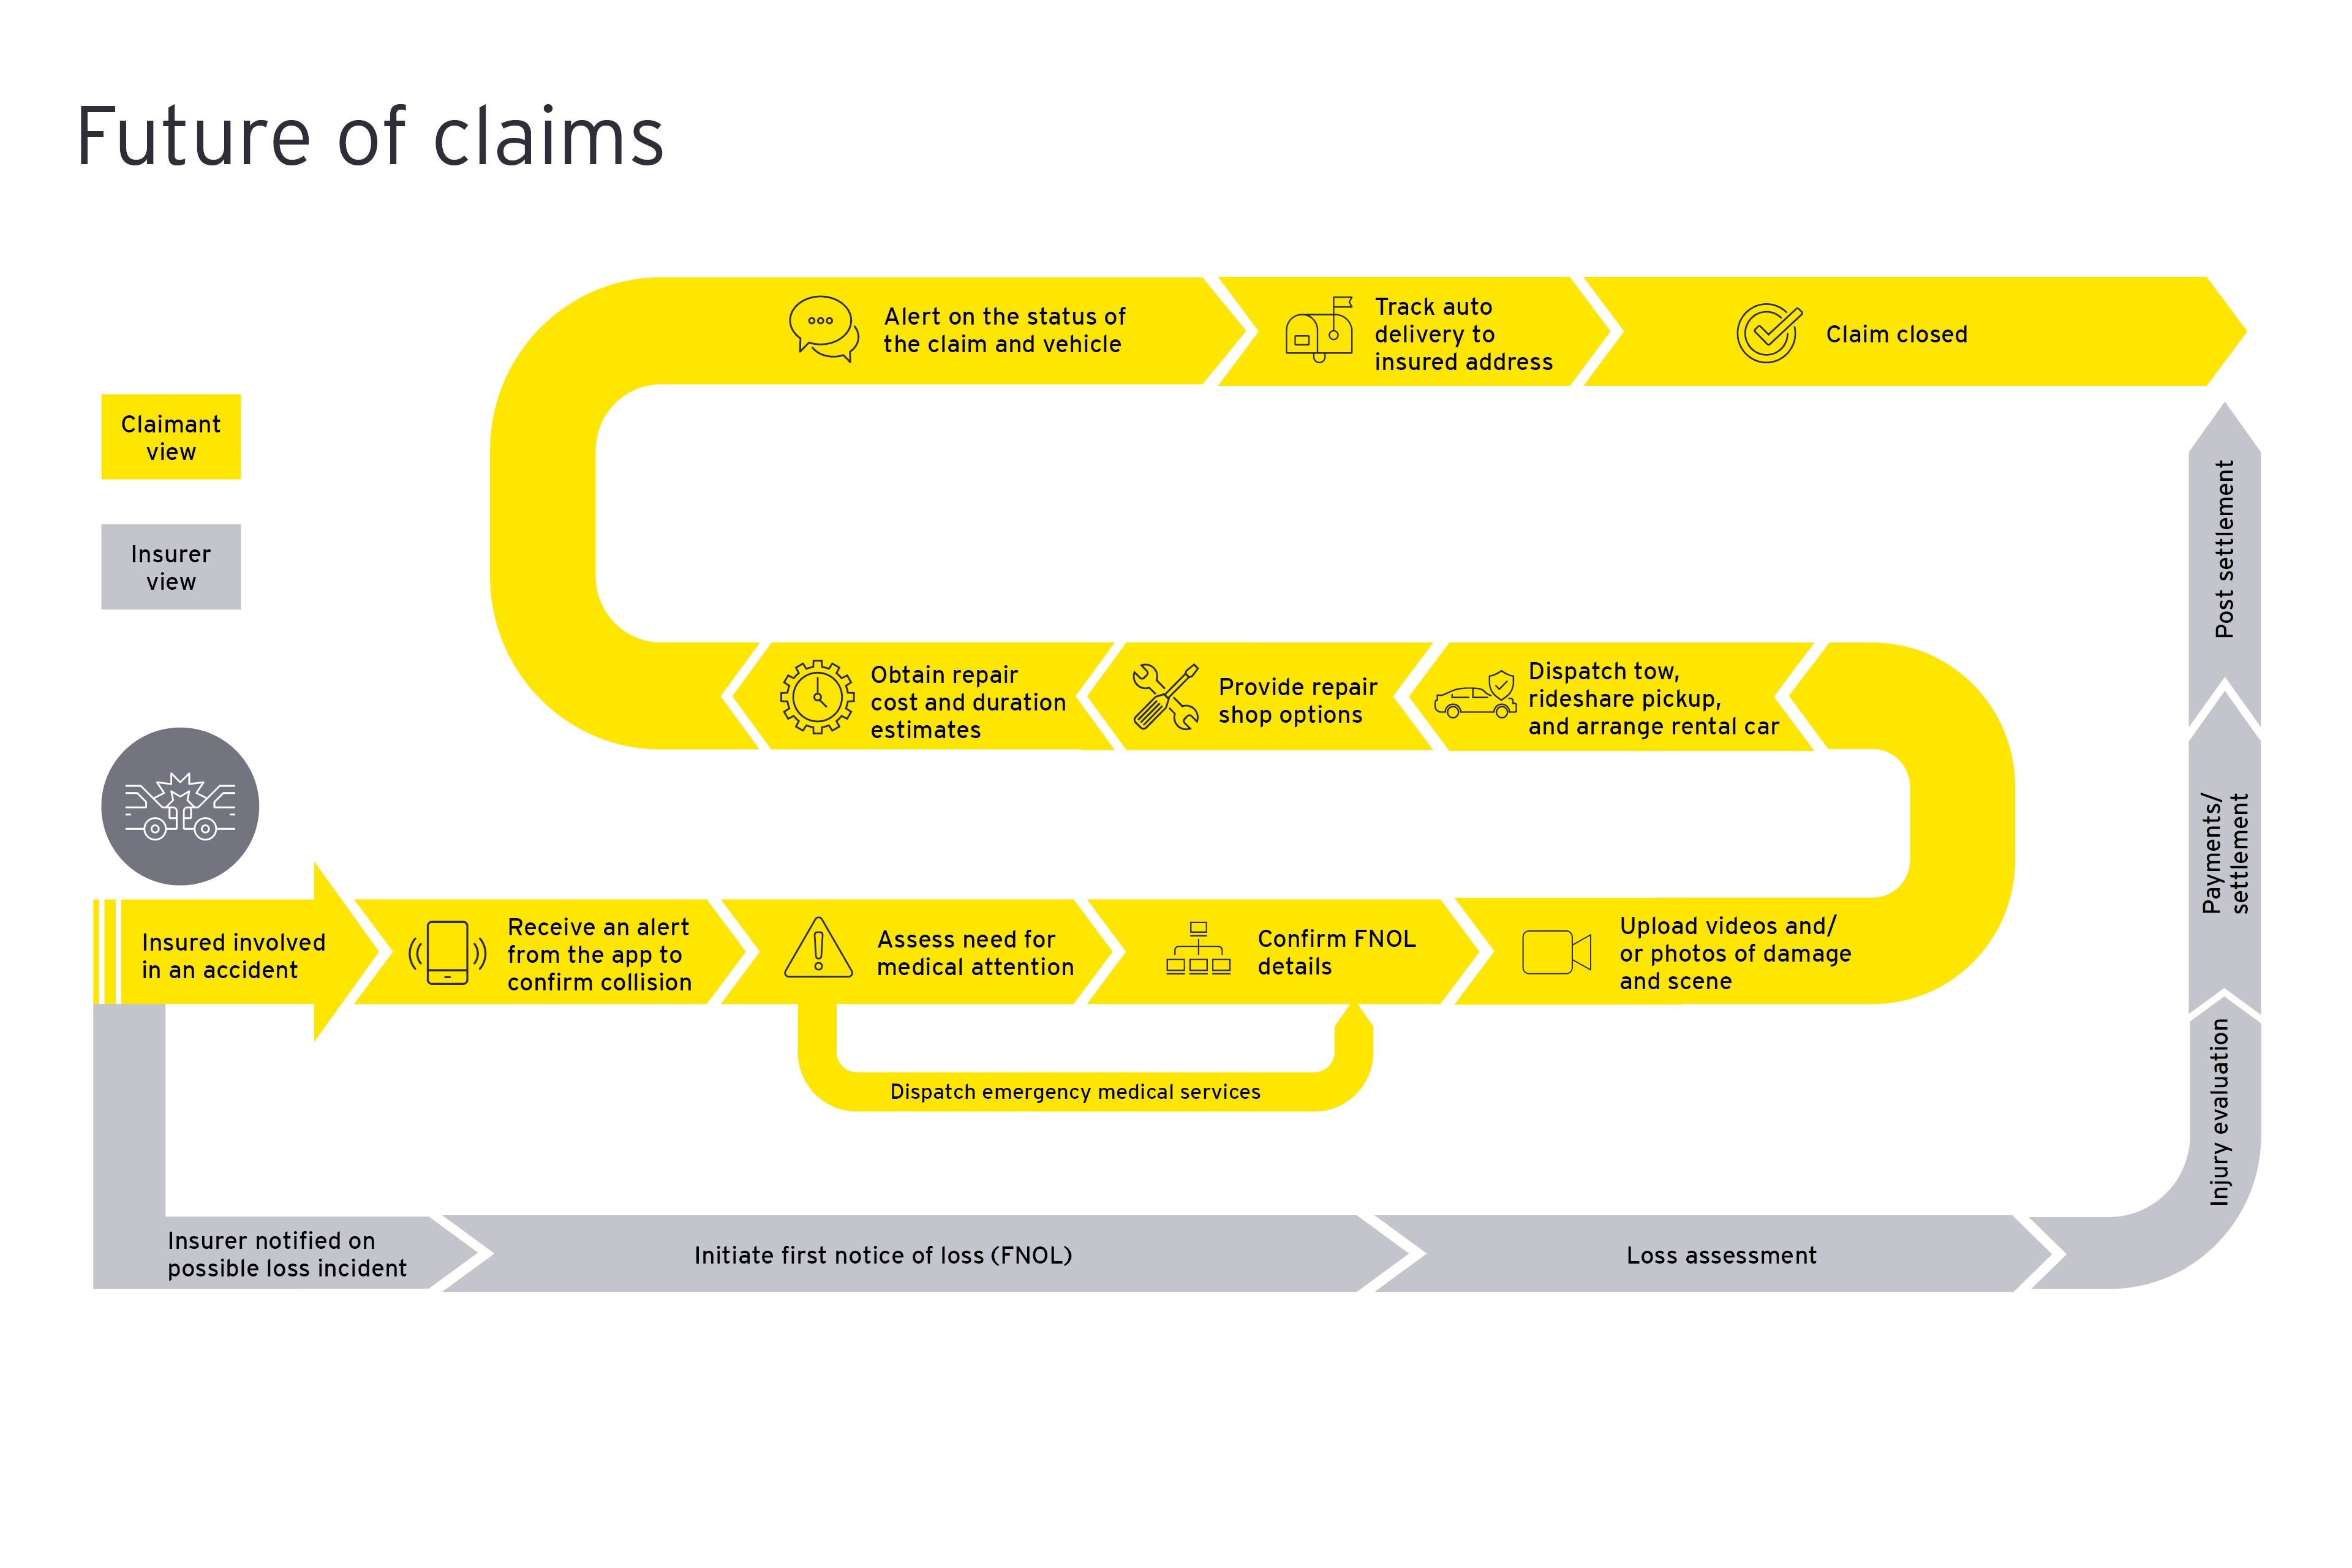 Future of claims